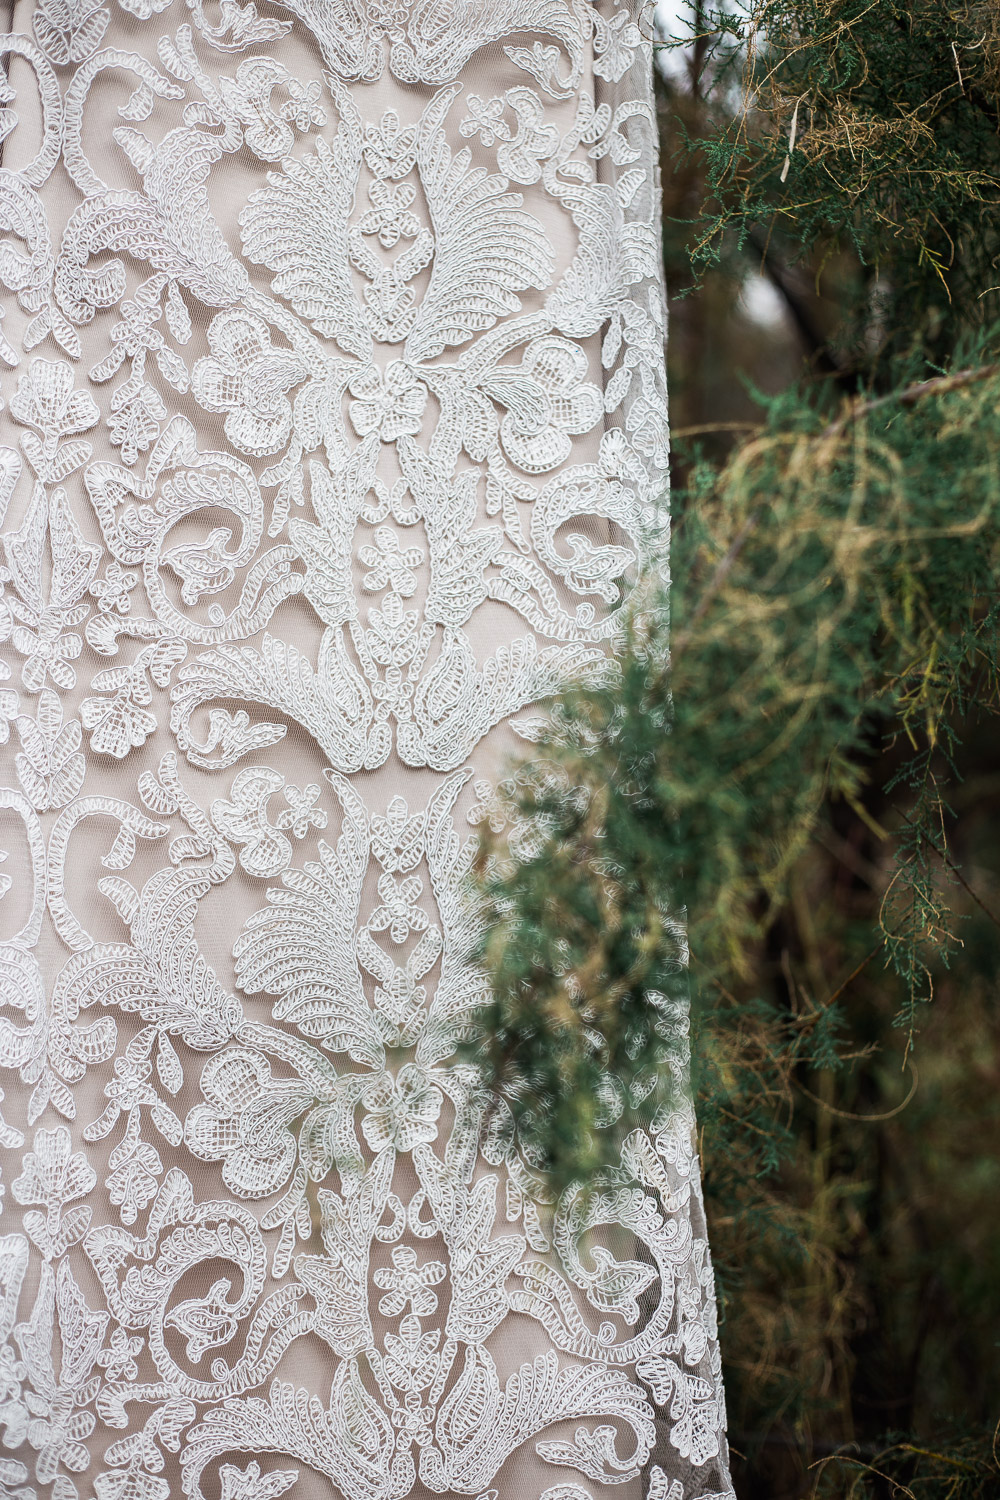 Dress close up detail foliage plant Moab Utah destination wedding photographer